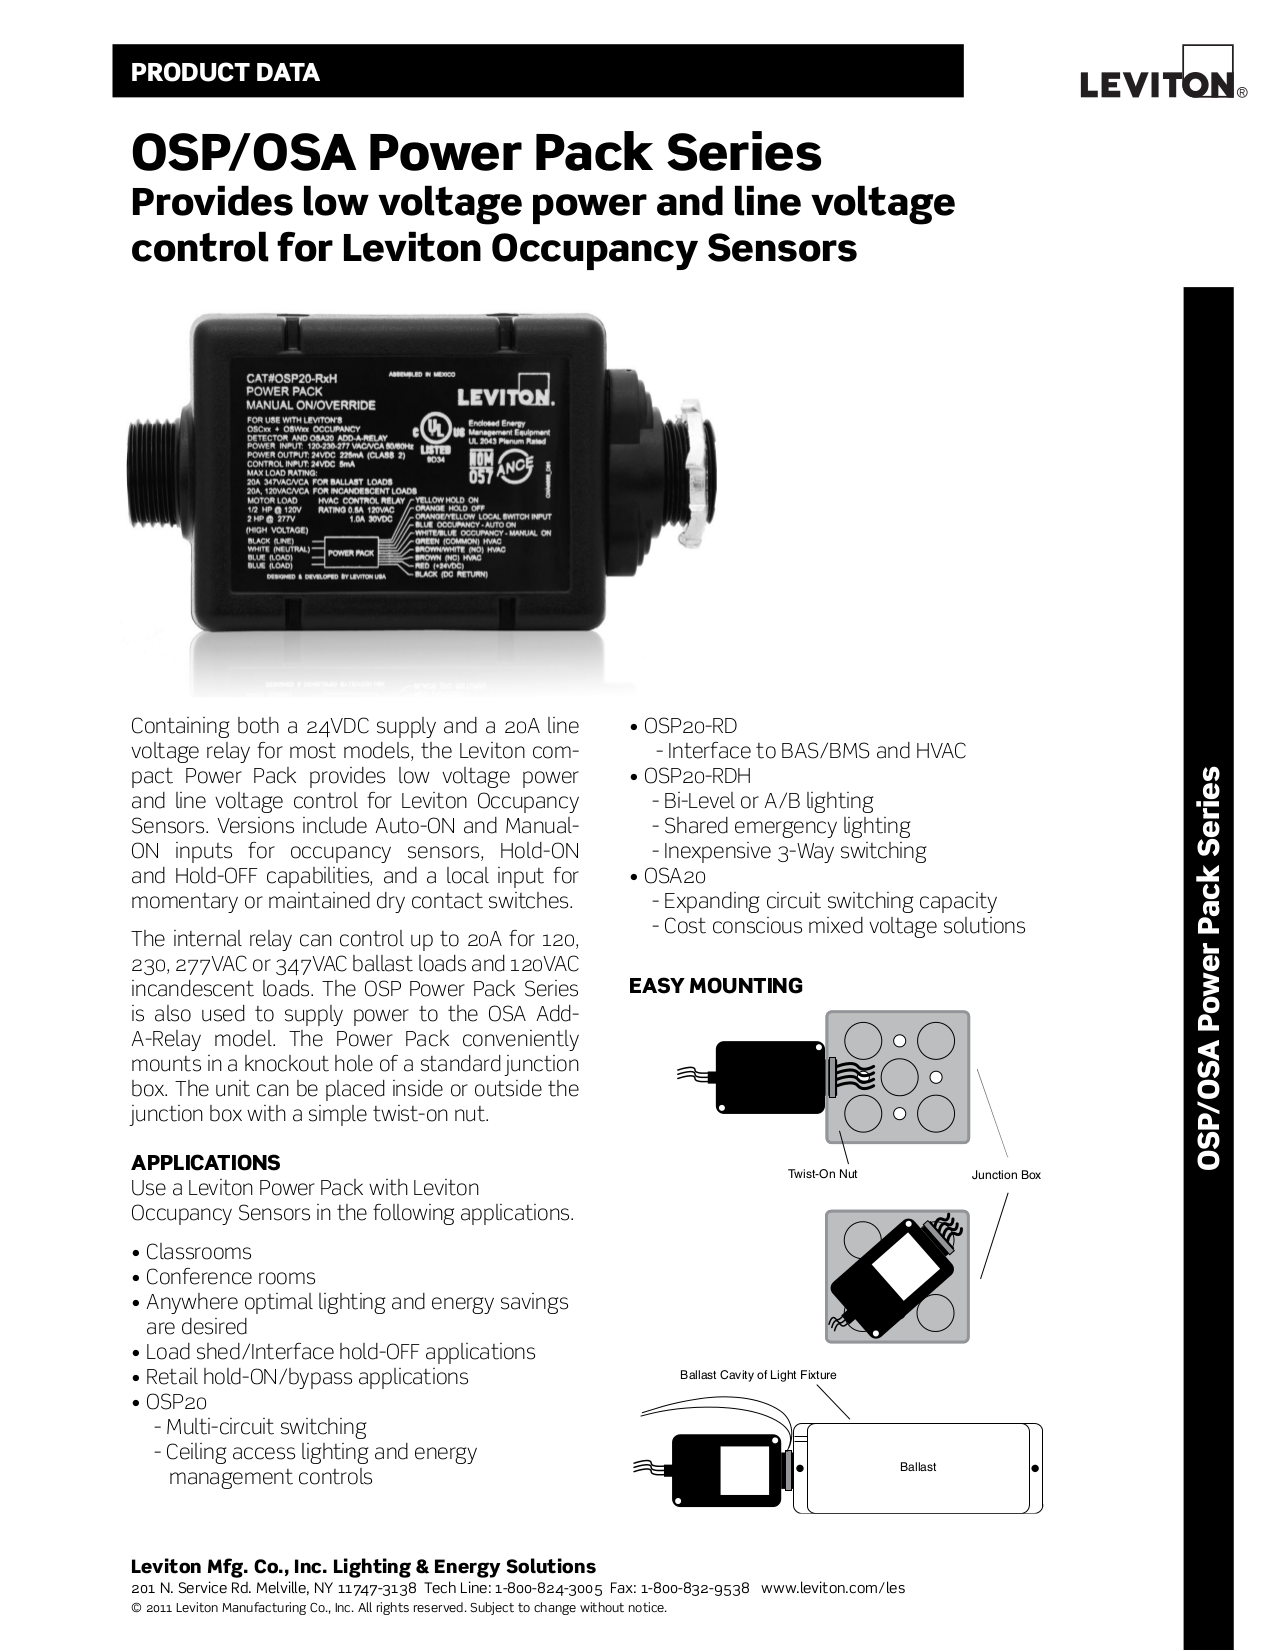 Beautiful Leviton Melville Ny Images - The Best Electrical Circuit ...